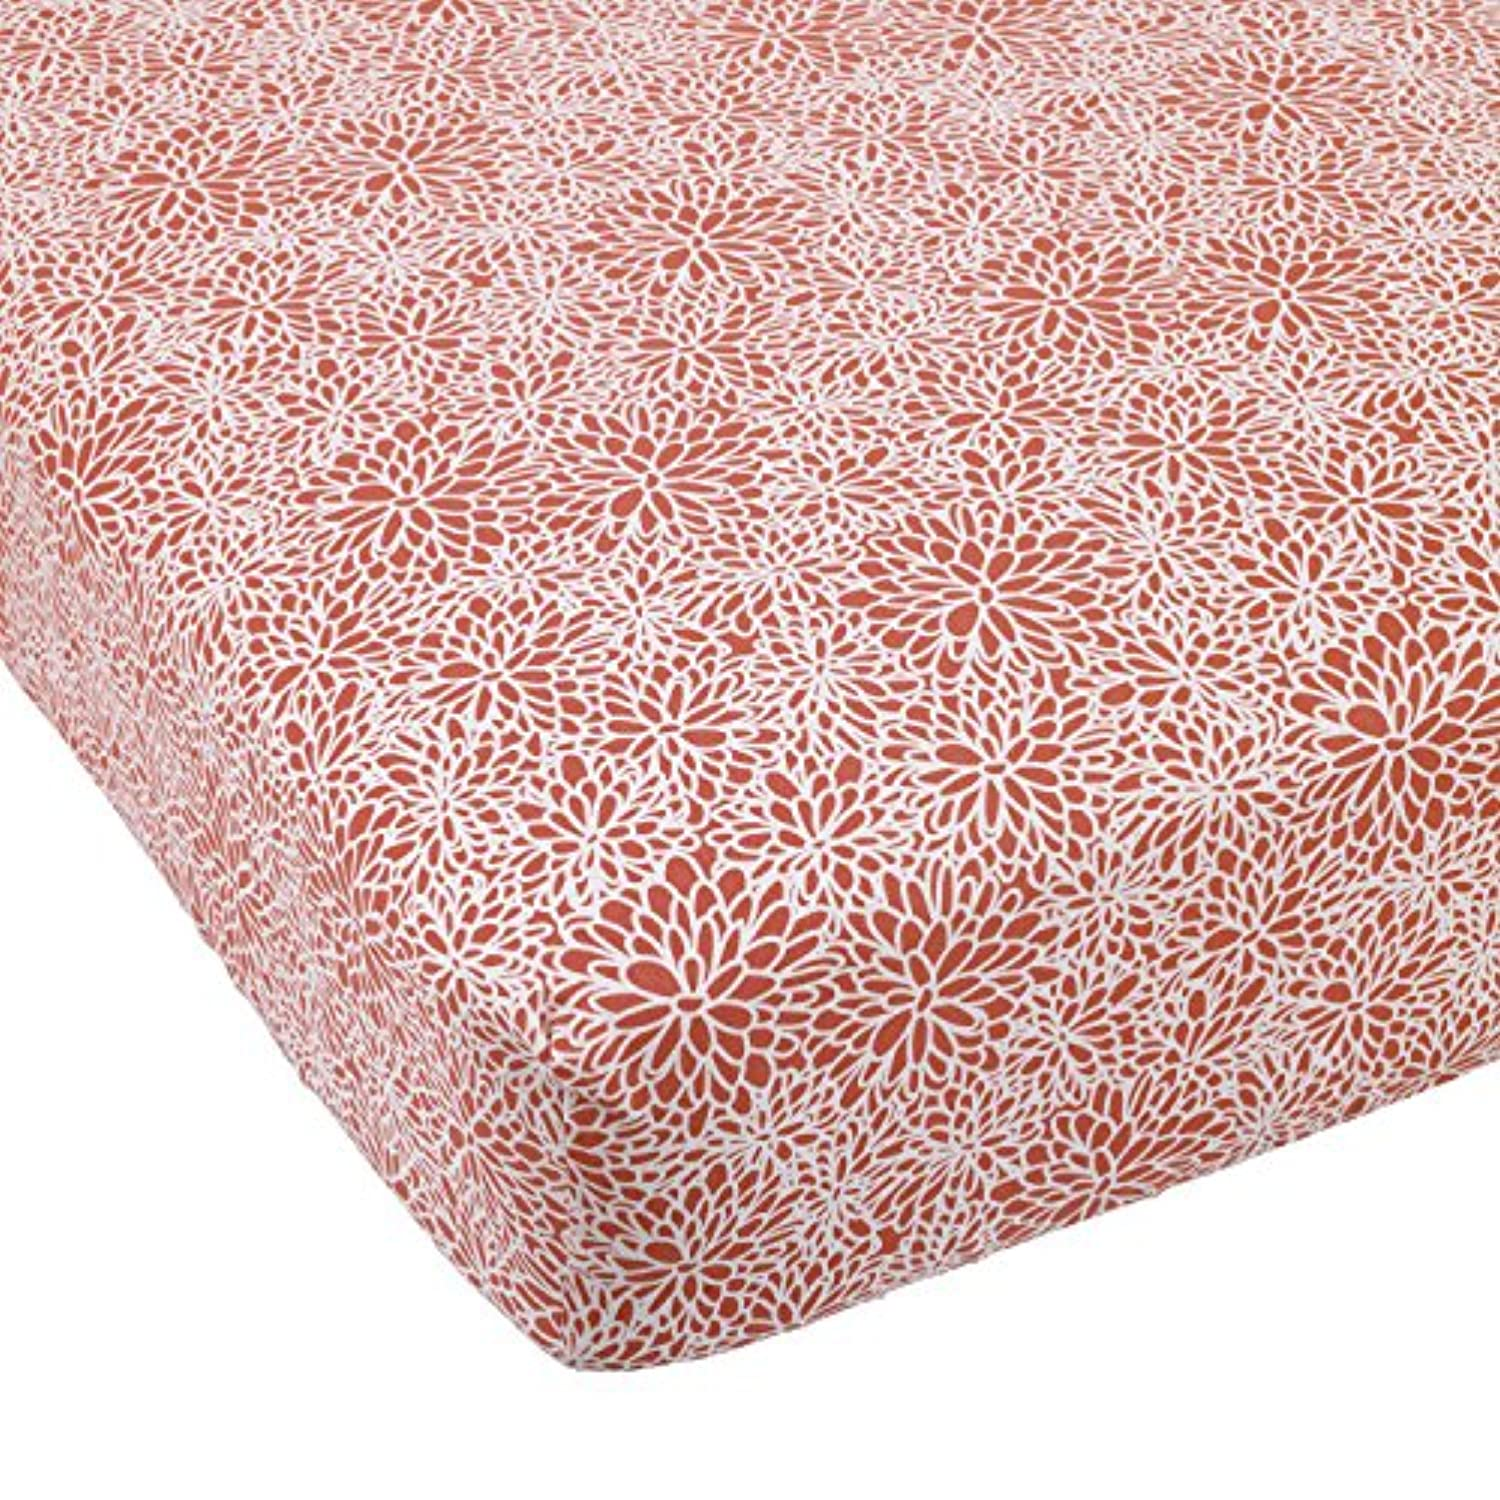 Balboa Baby Cotton Sateen Fitted Crib Sheet, Coral Bloom by Balboa Baby